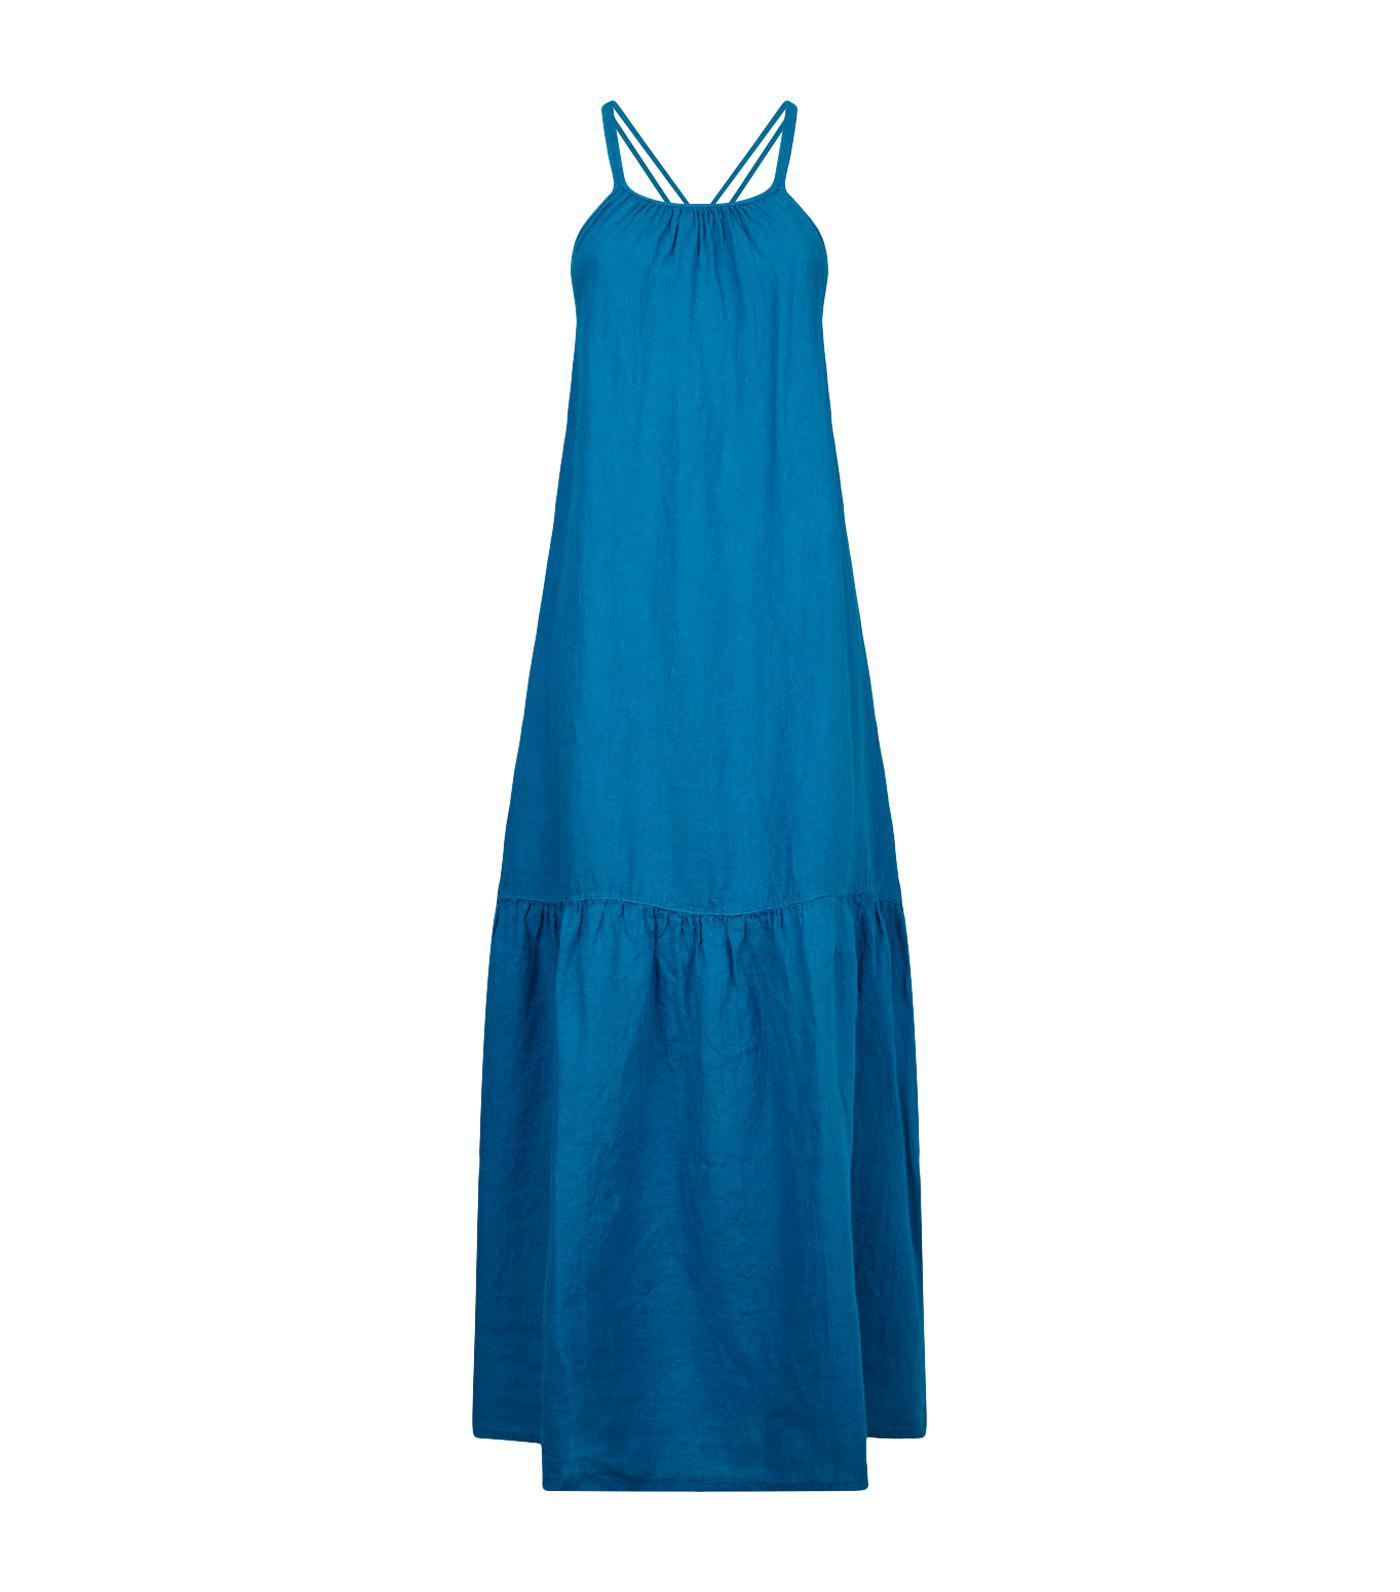 f2fcecf6d6 Lyst - 120% Lino Halterneck Maxi Dress in Blue